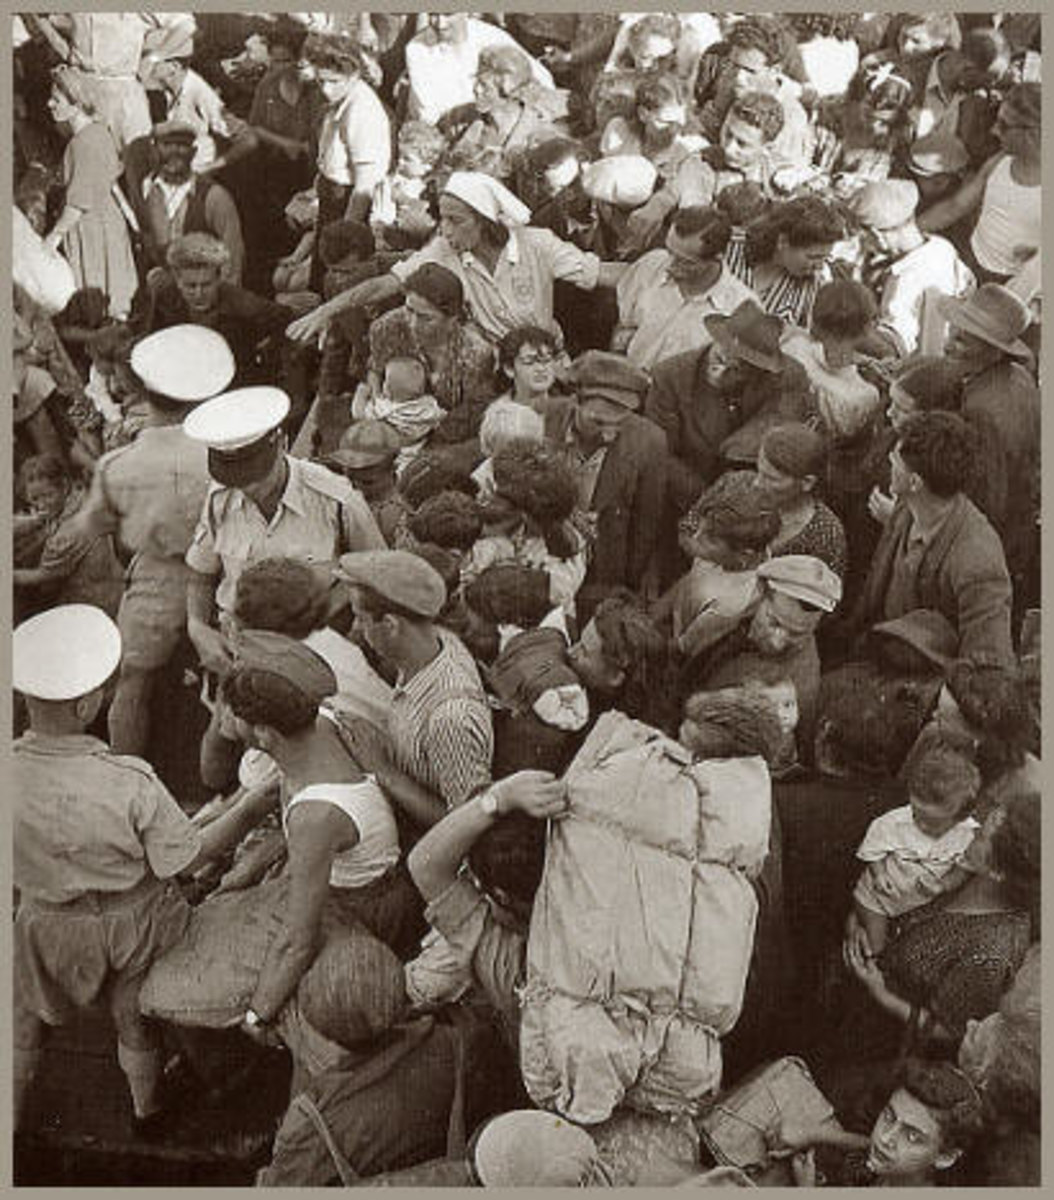 Displaced European Jews arrive in Israel, 1948